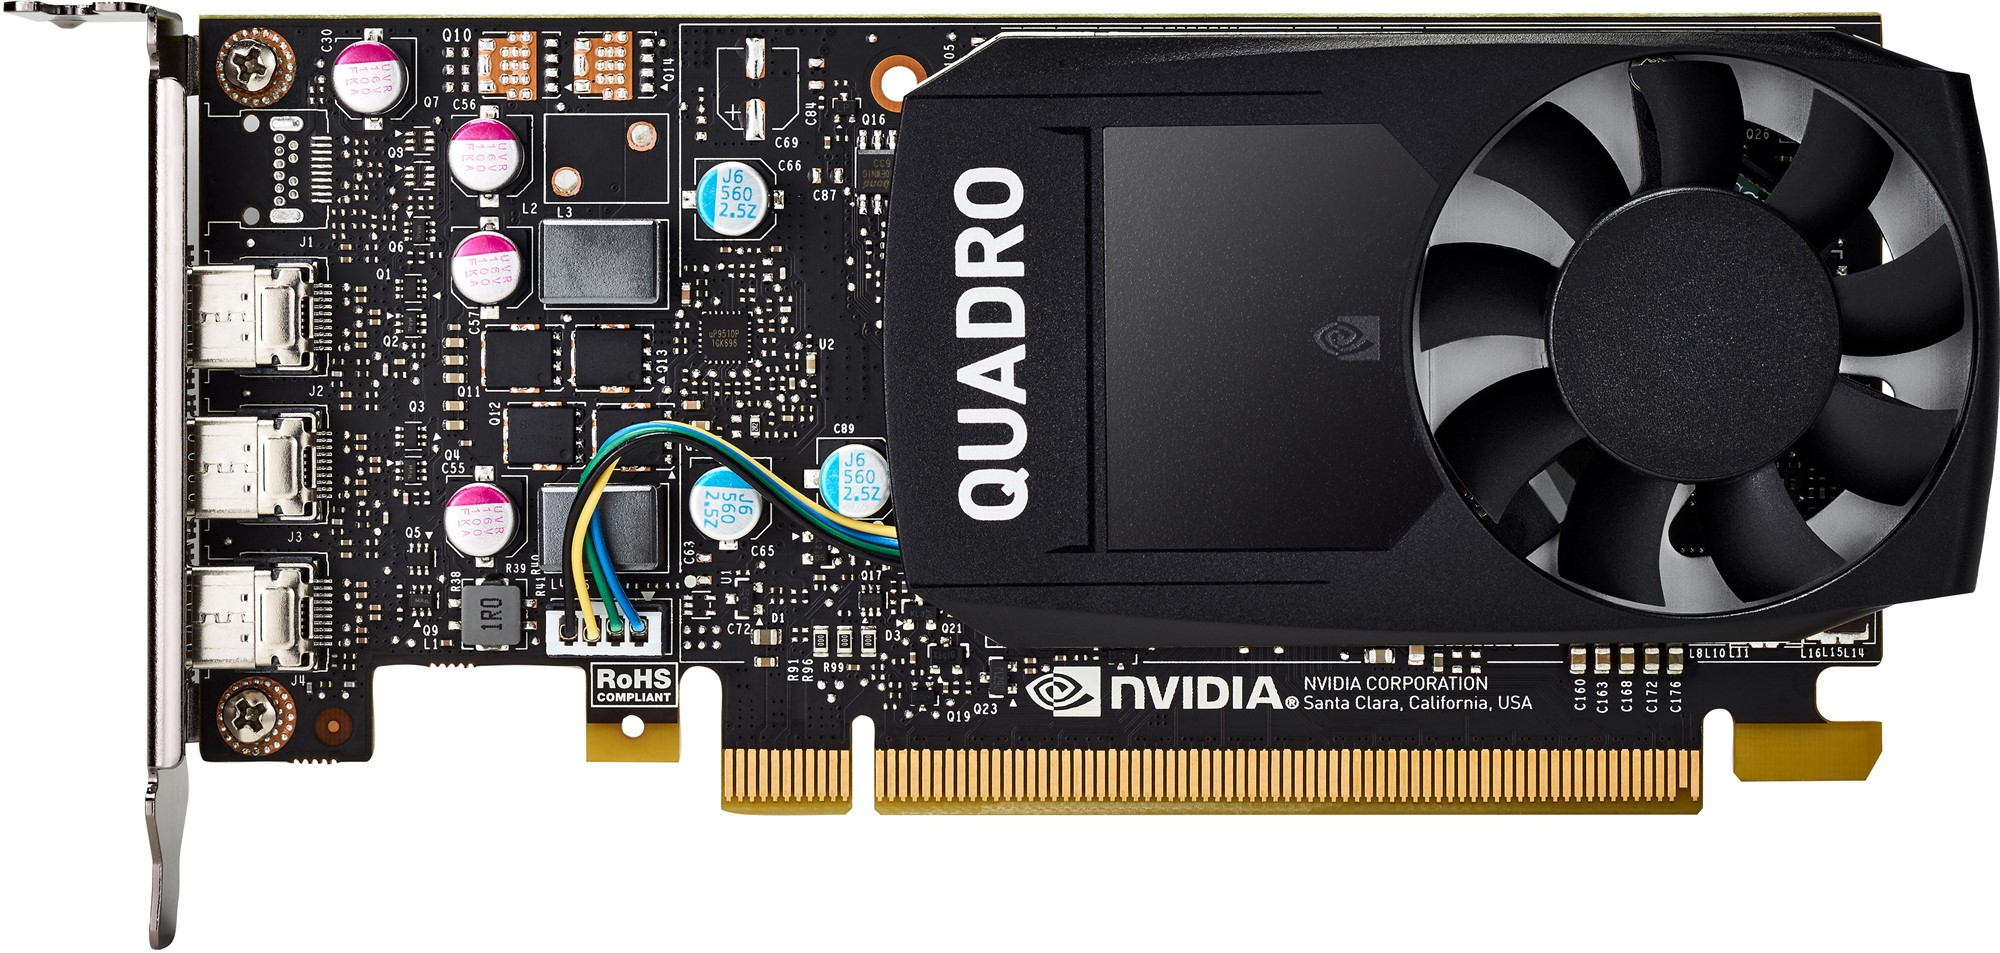 HP 1ME41AT NVIDIA QUADRO P2000 (5GB) GRAPHICS CARD